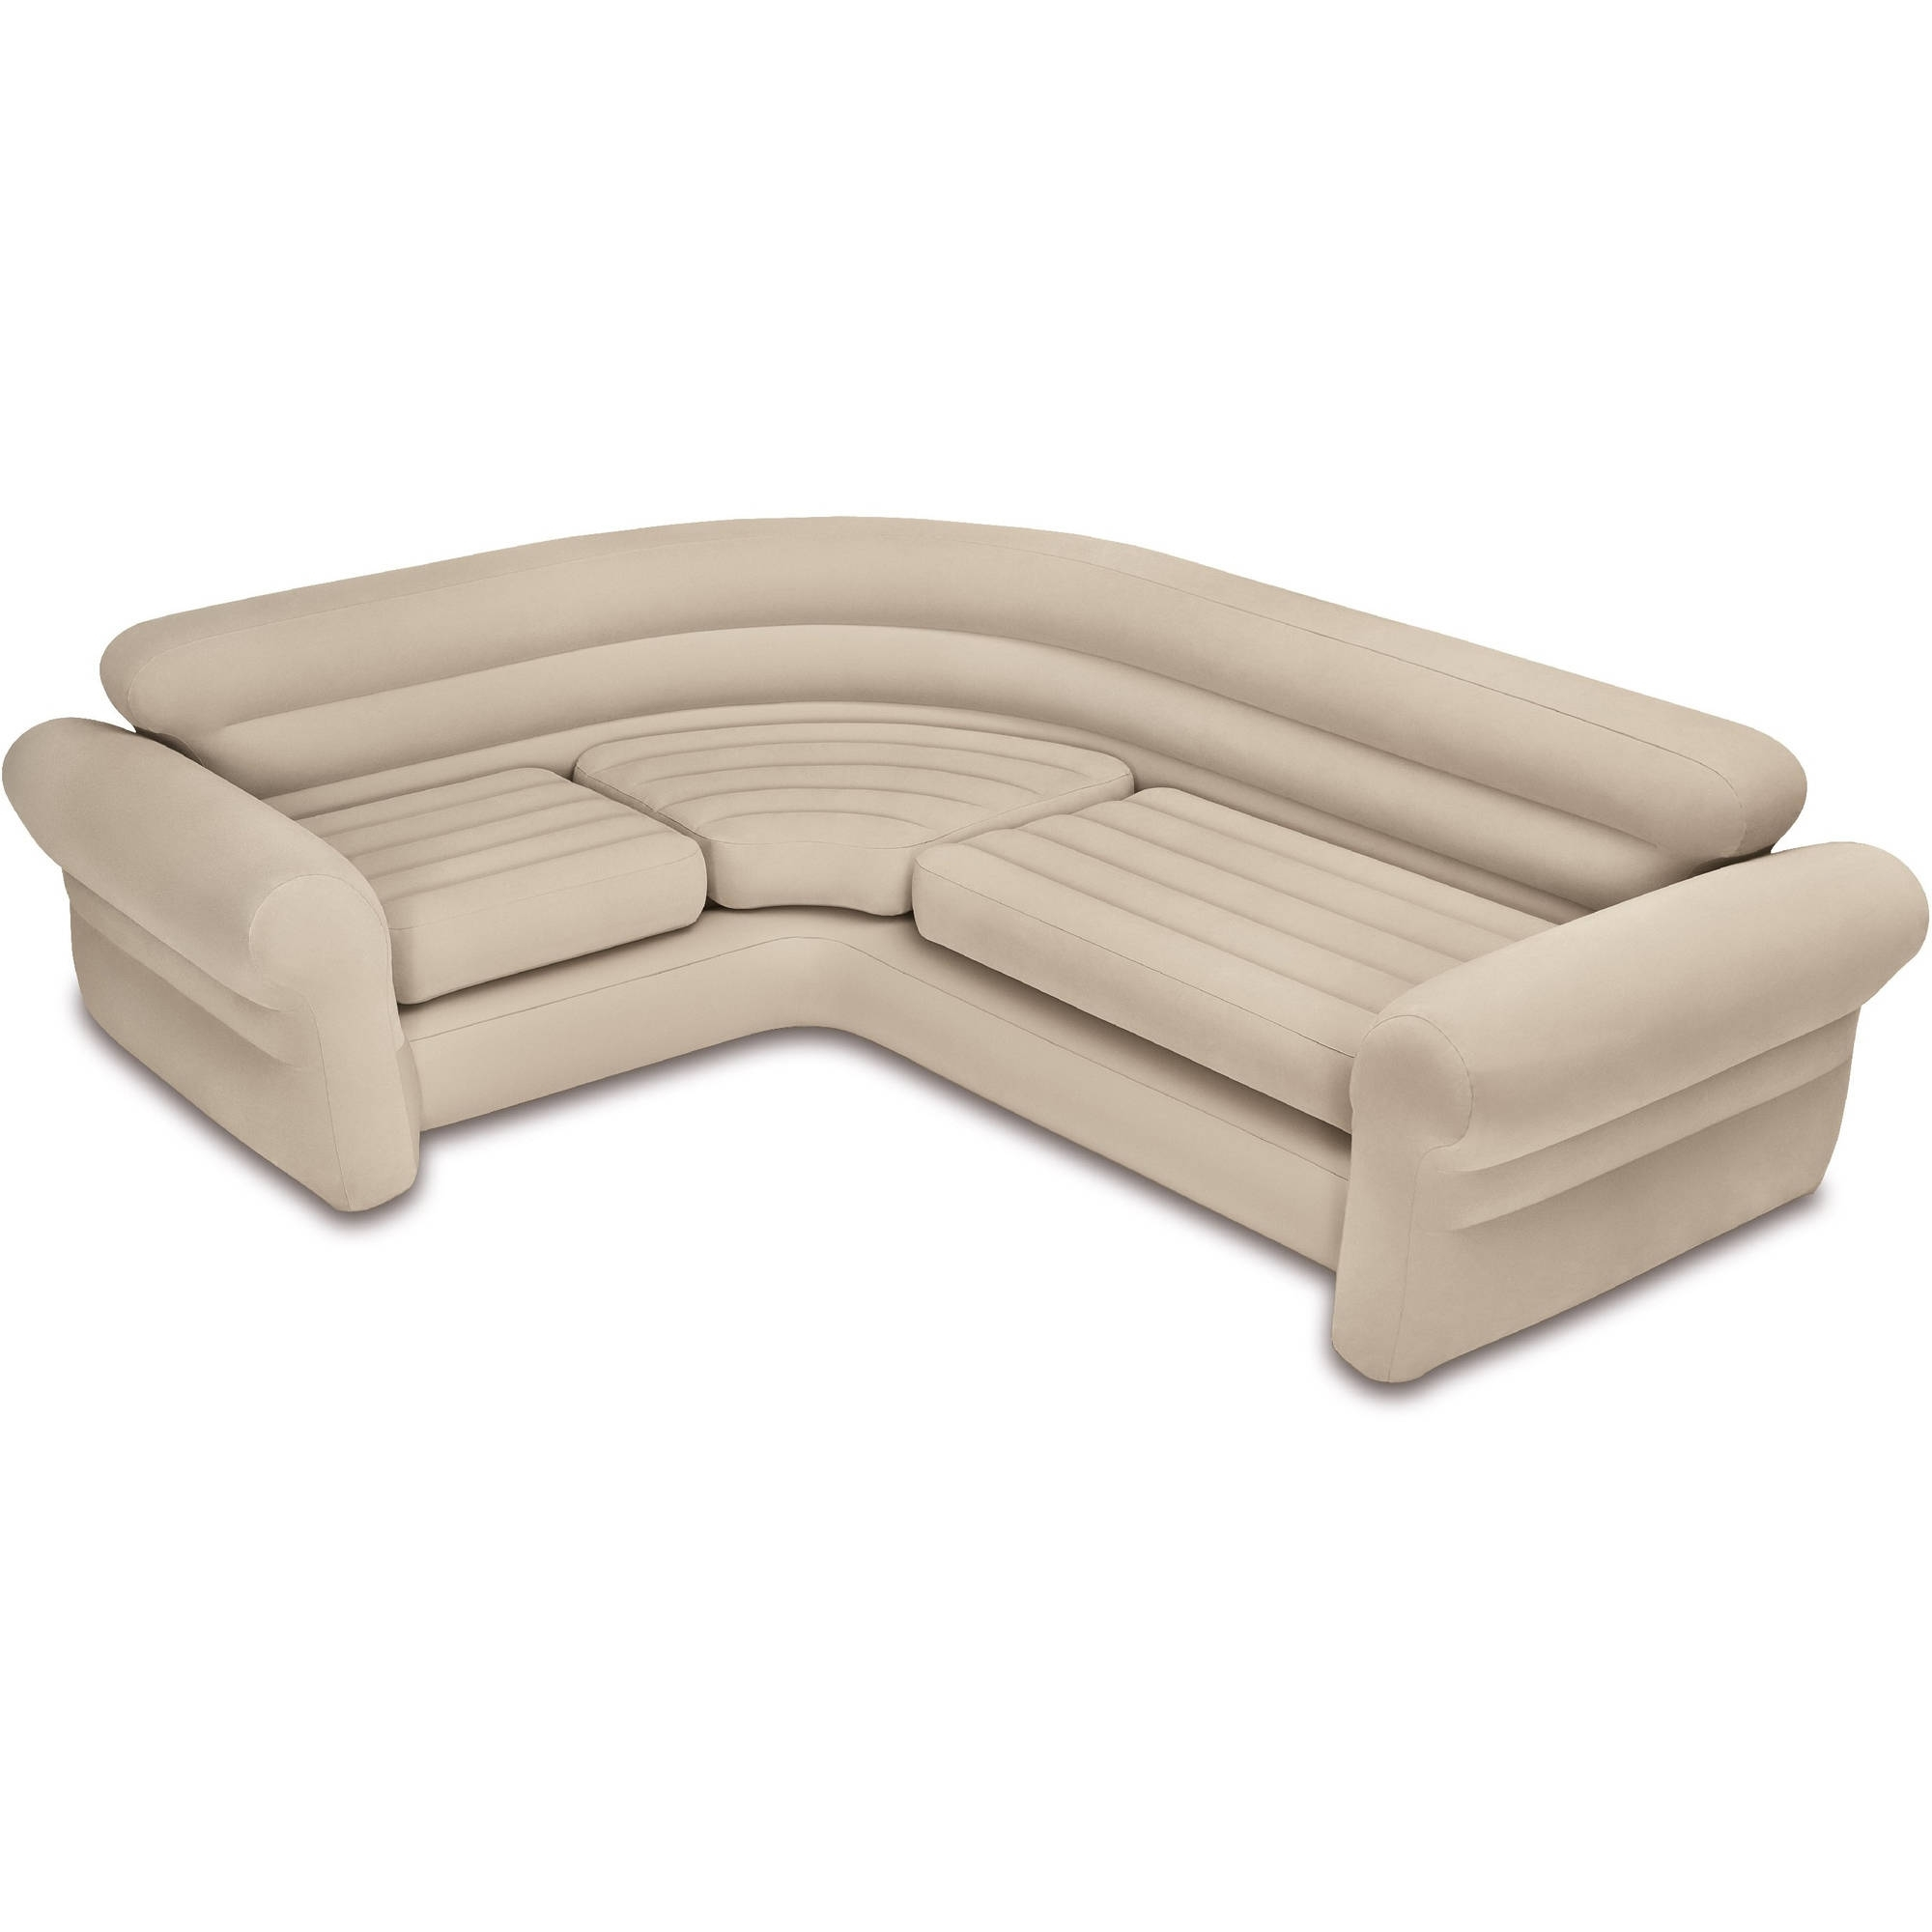 Popular Intex Inflatable Corner Sofa – Walmart Throughout Sectional Sofas For Campers (View 9 of 20)